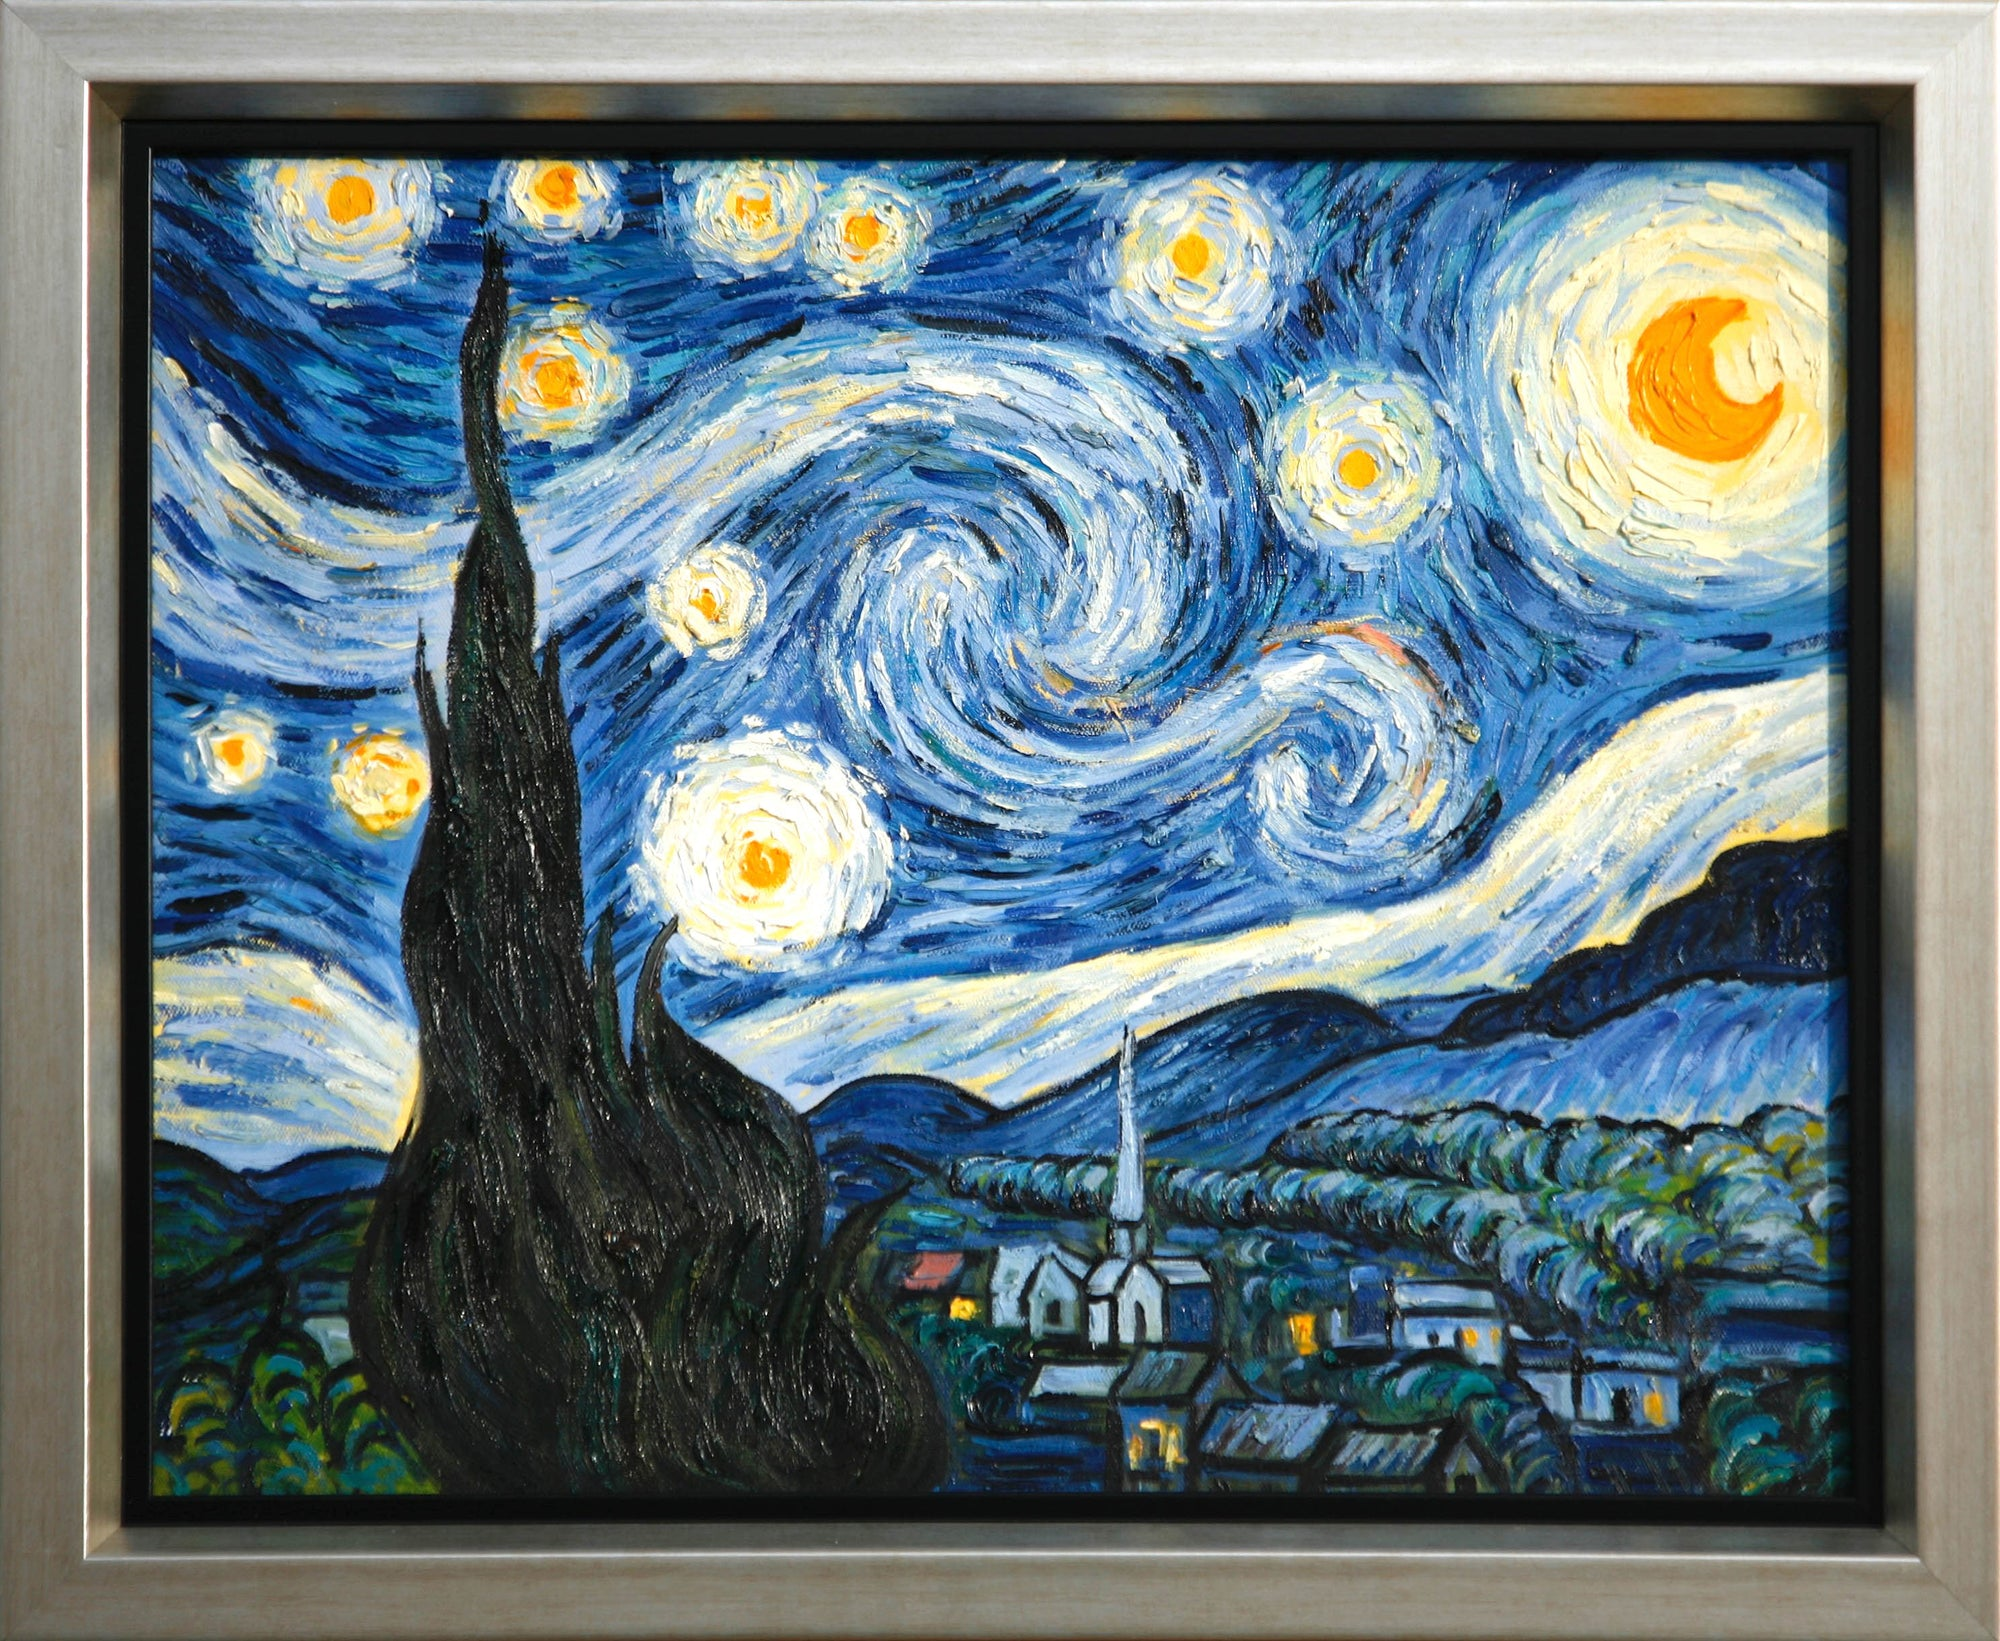 Van Gogh The Starry Night